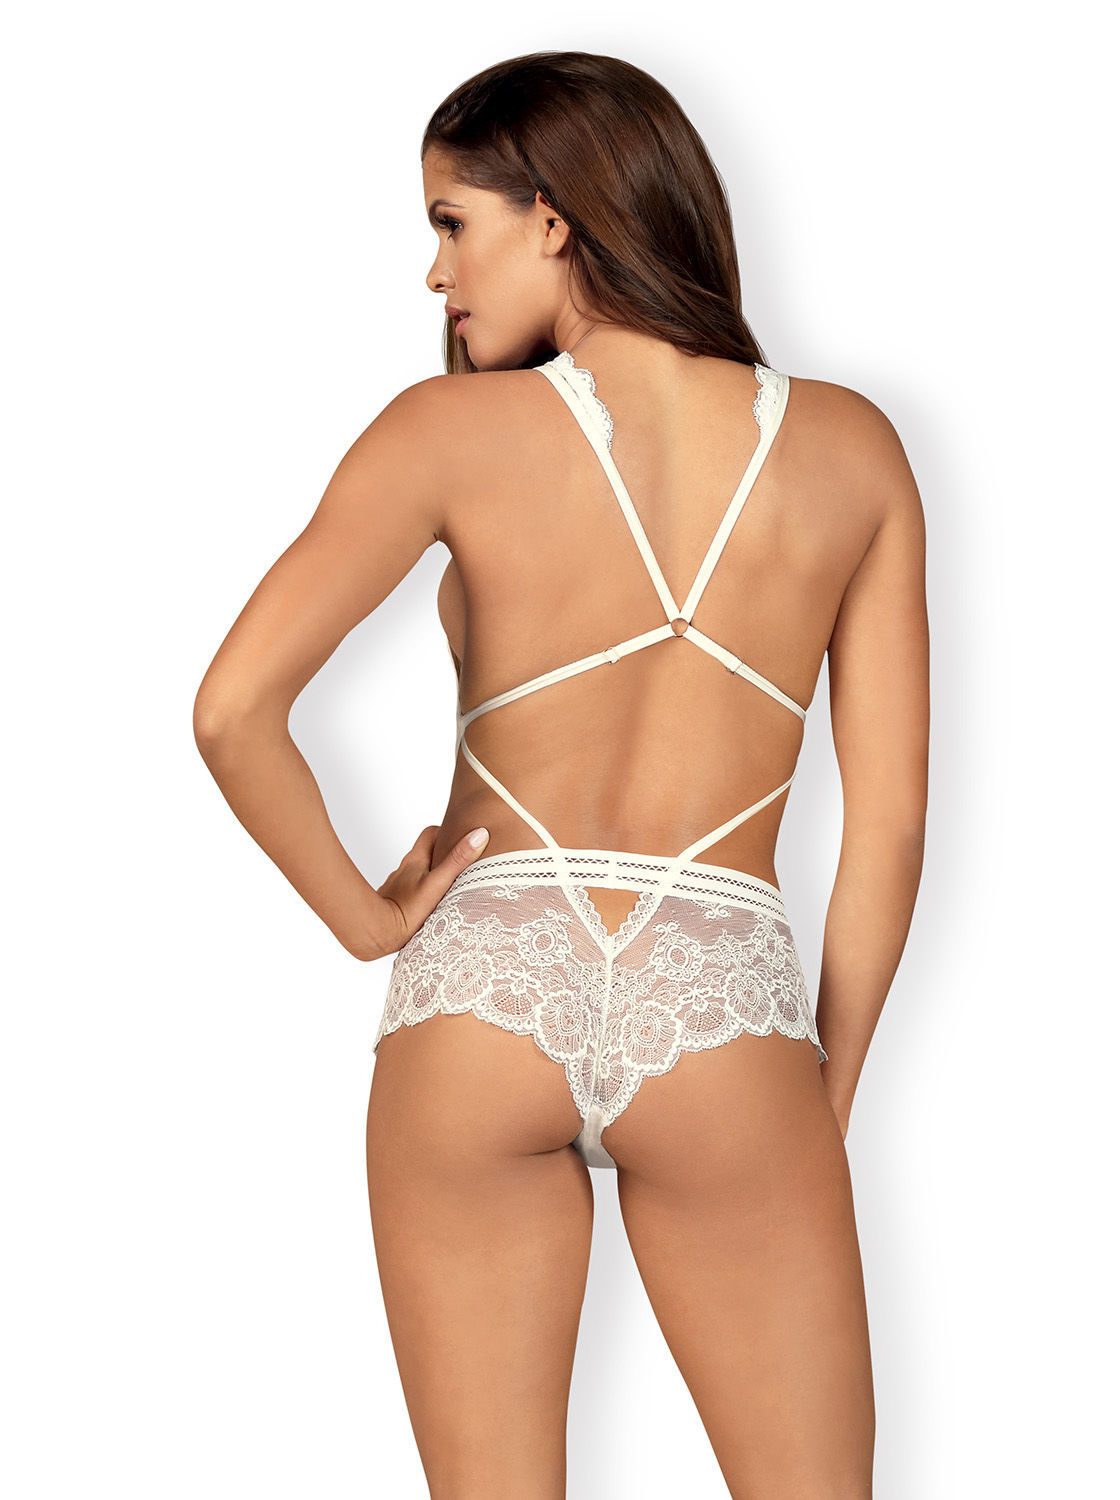 Image de 853-TED - Lacy, White Teddy - S/M